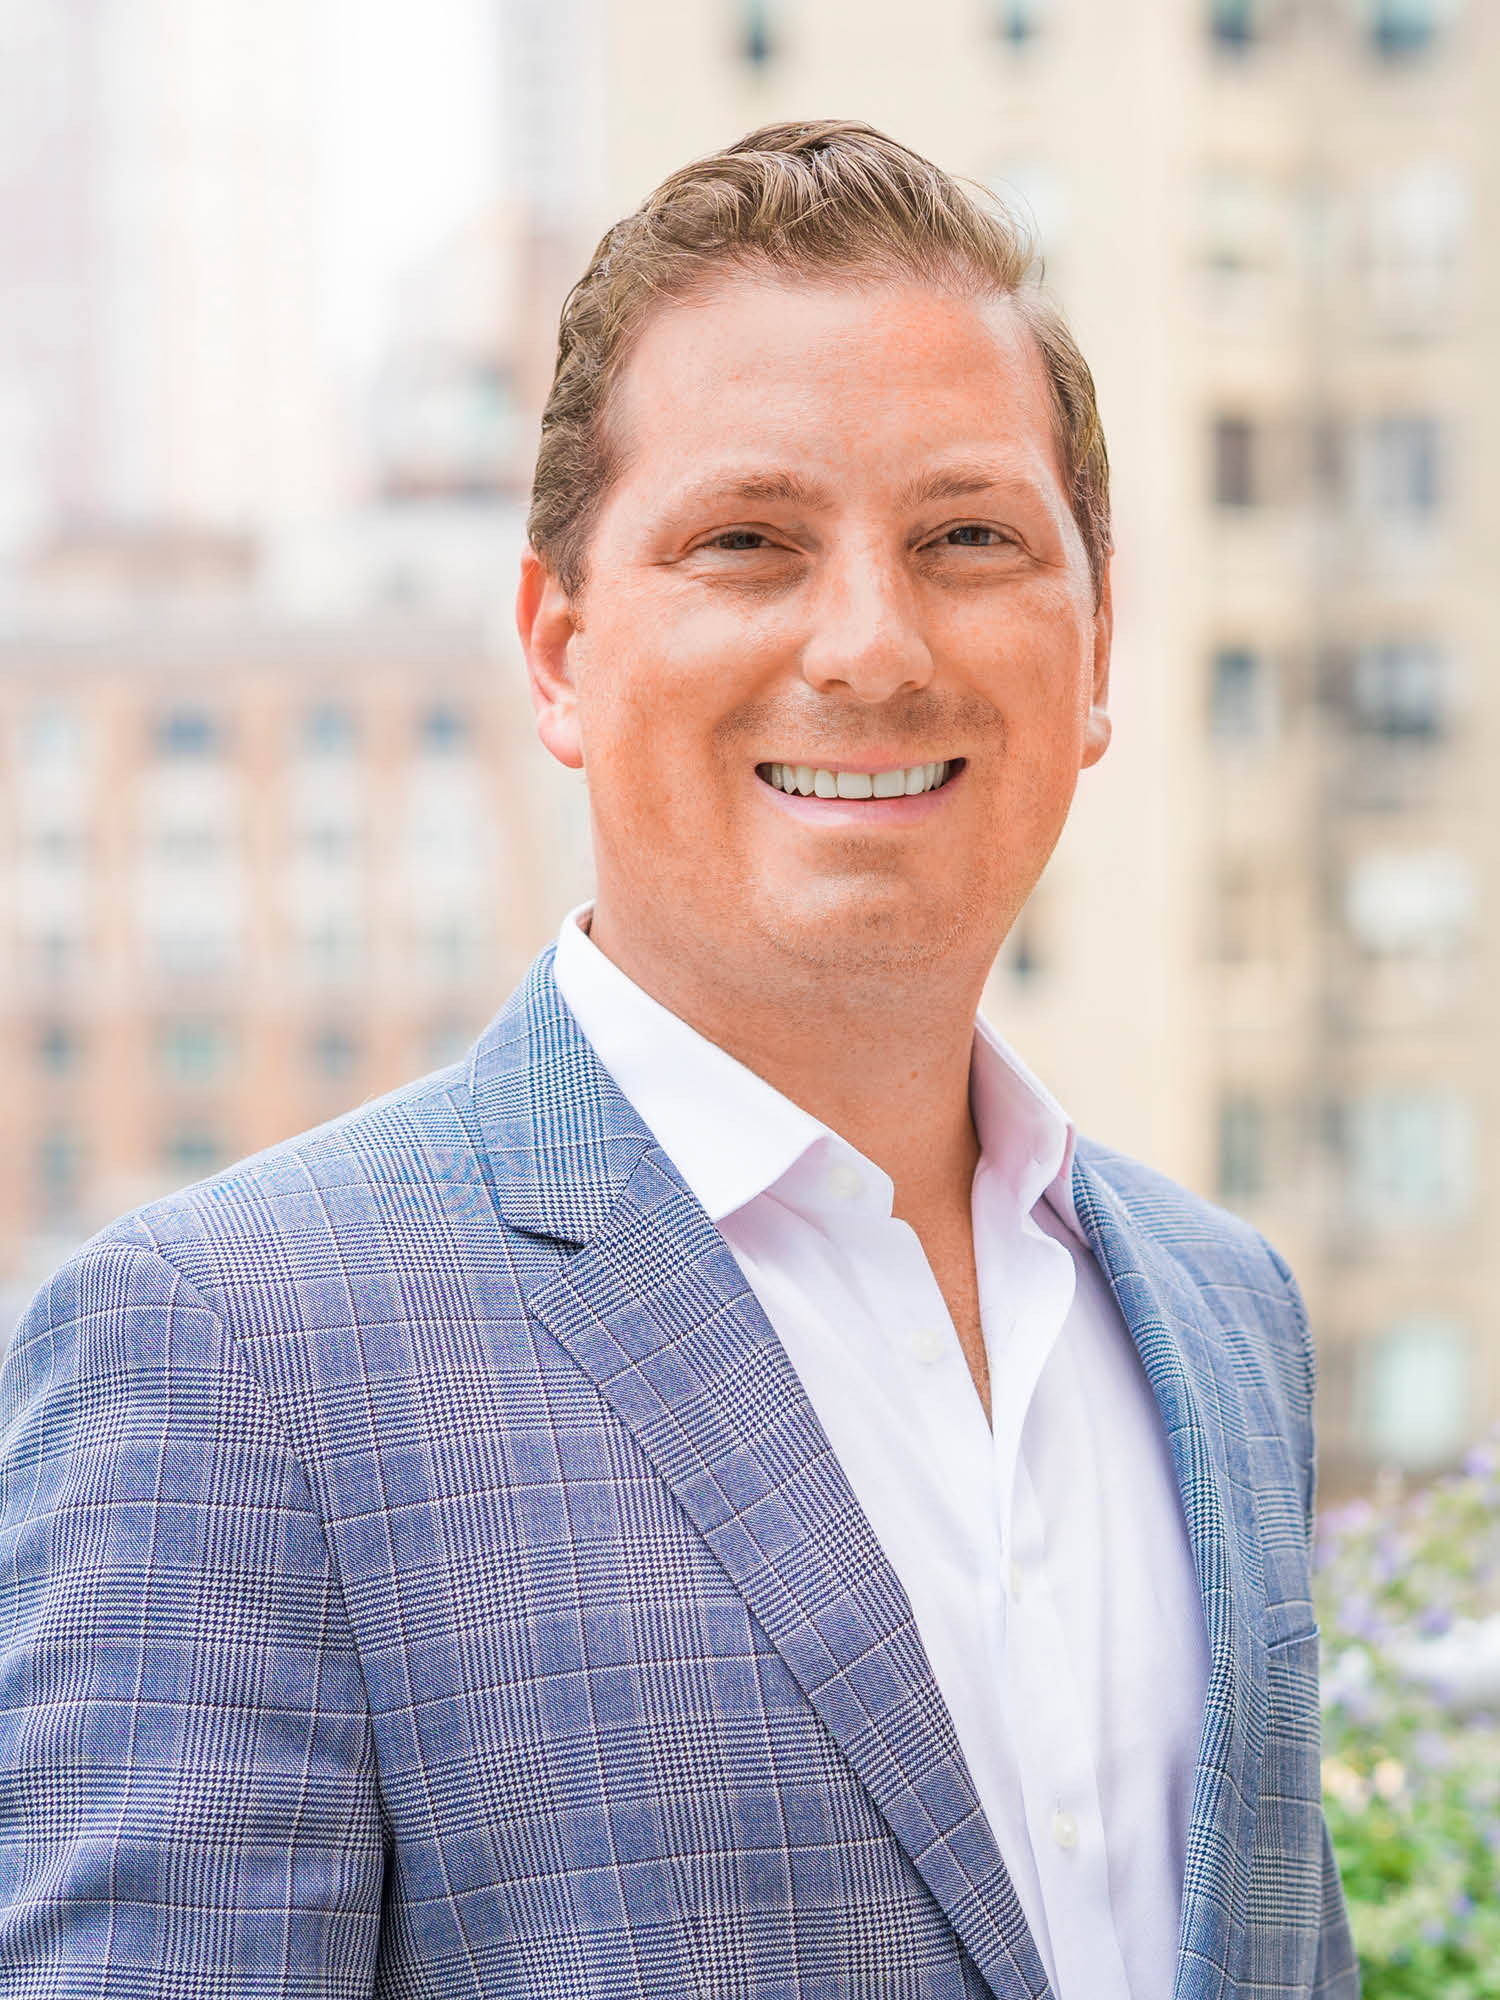 Steven Kramer, a top realtor in New York City for Corcoran, a real estate firm in East Side.